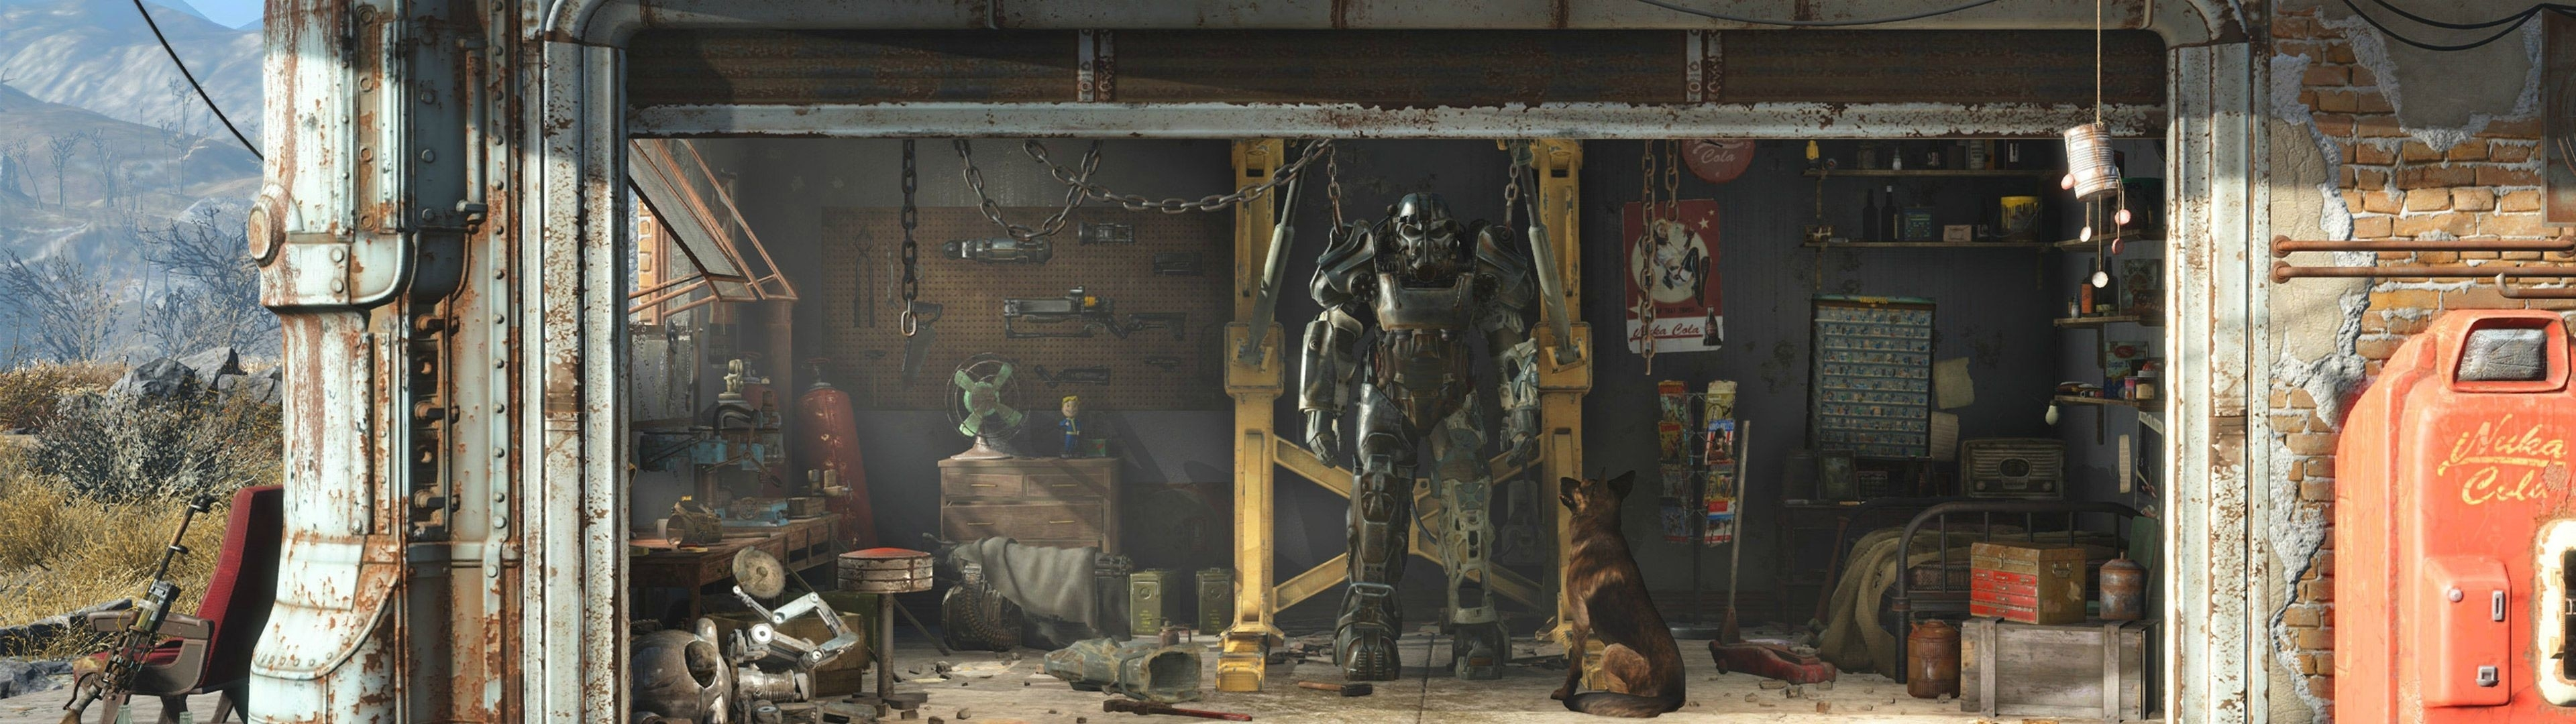 fallout 4 dual screen wallpaper (56+ images)